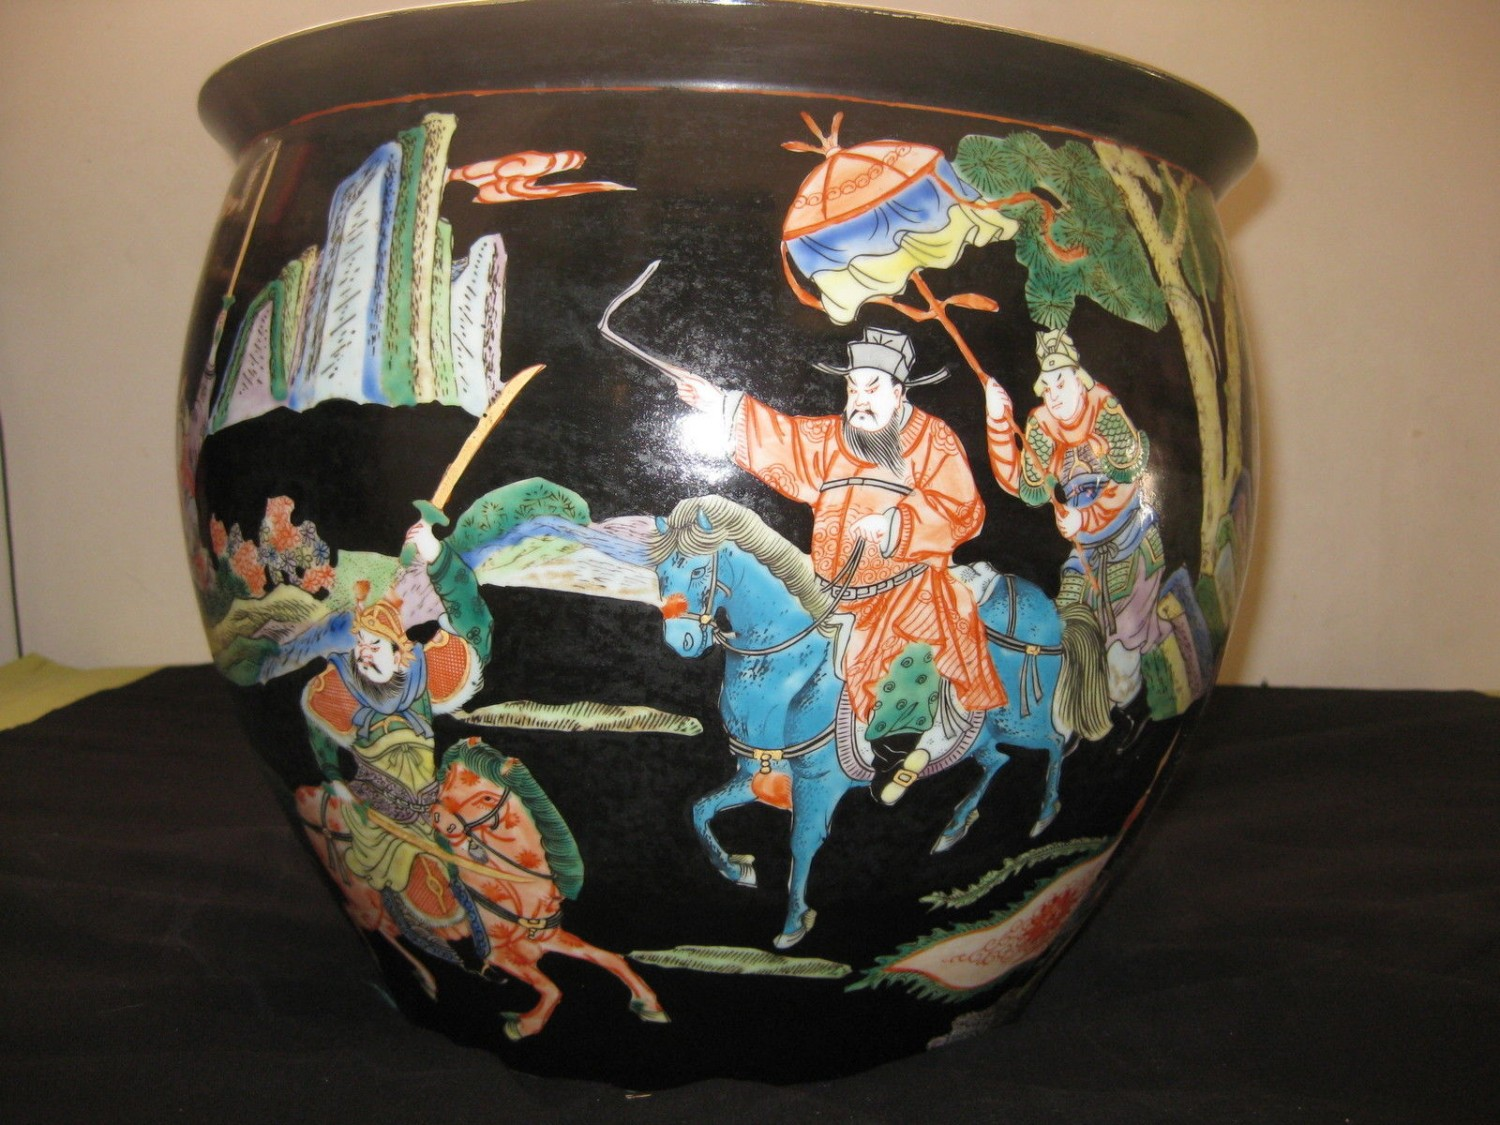 ANTIQUE HUGE CHINESE PORCELAIN FISH BOWL,19TH CENTURY, NR.